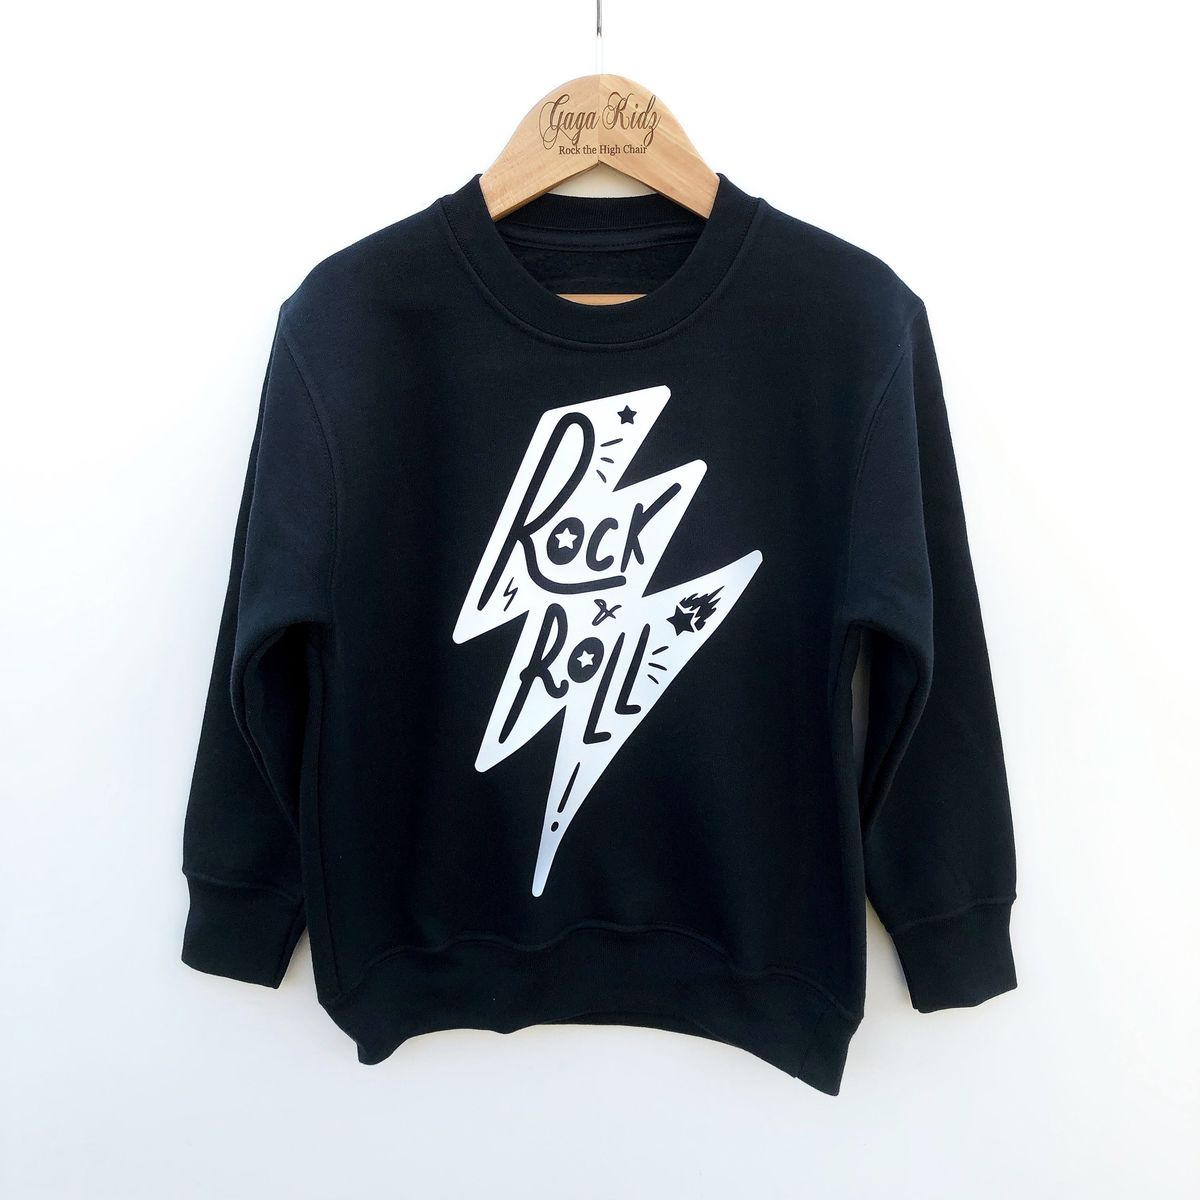 Rock & Roll Lightning Bolt Sweatshirt - product images  of